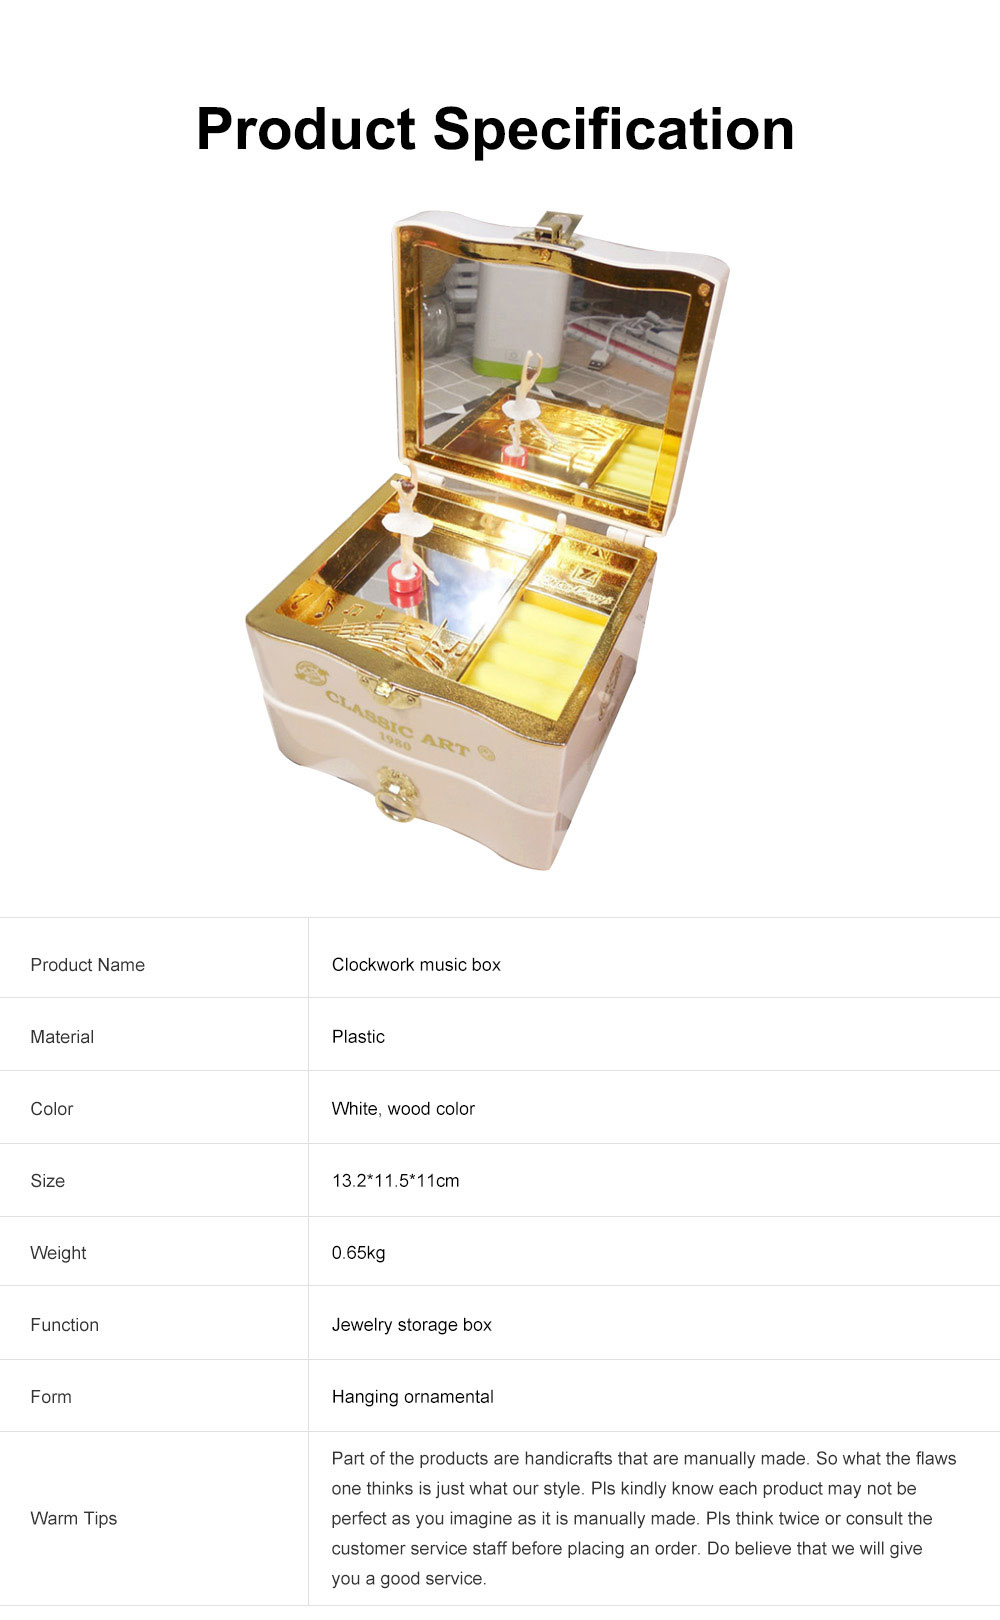 Classic Retro Style Dancing Girl Musical Box as Gift for Children or Girls, Clockwork Musical Box Creative Storage Box with Playing Music Jewelry 7